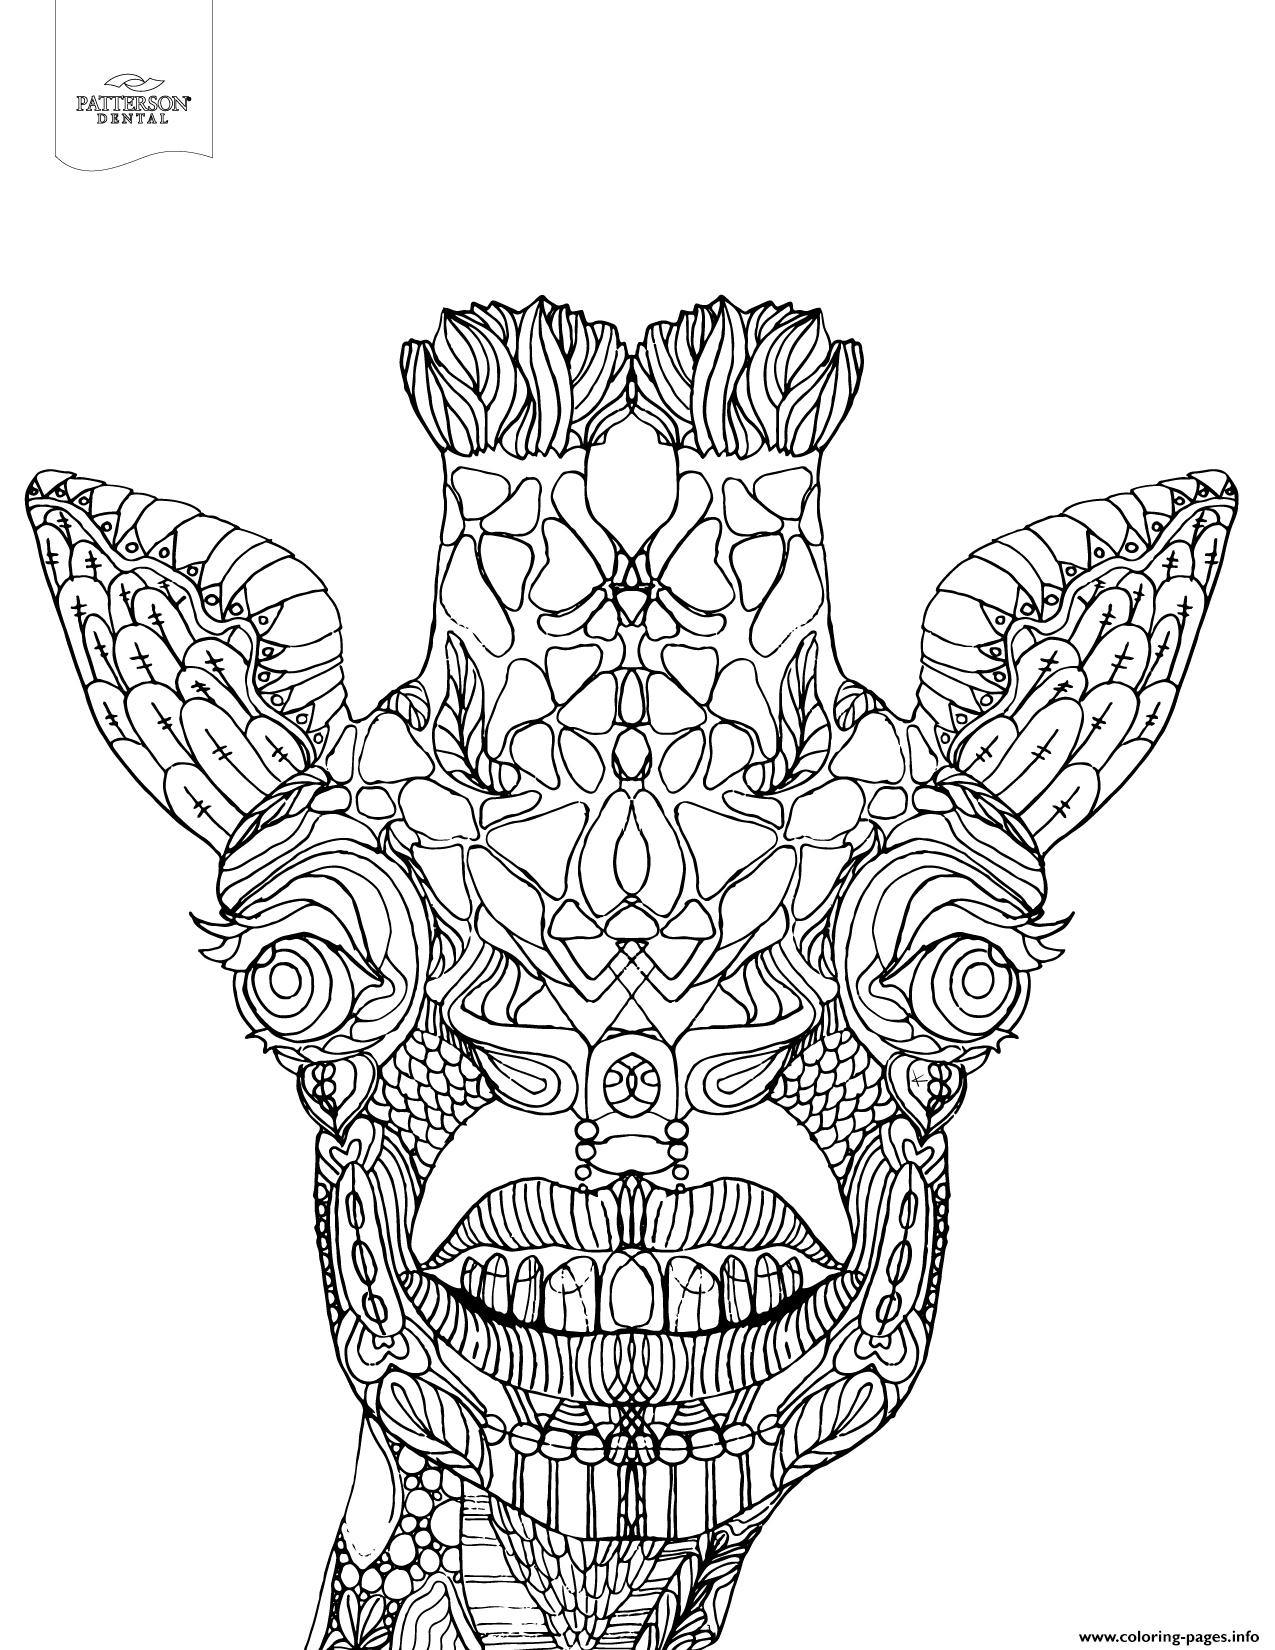 Advanced Toothy Giraffe Animal Coloring Pages Printable